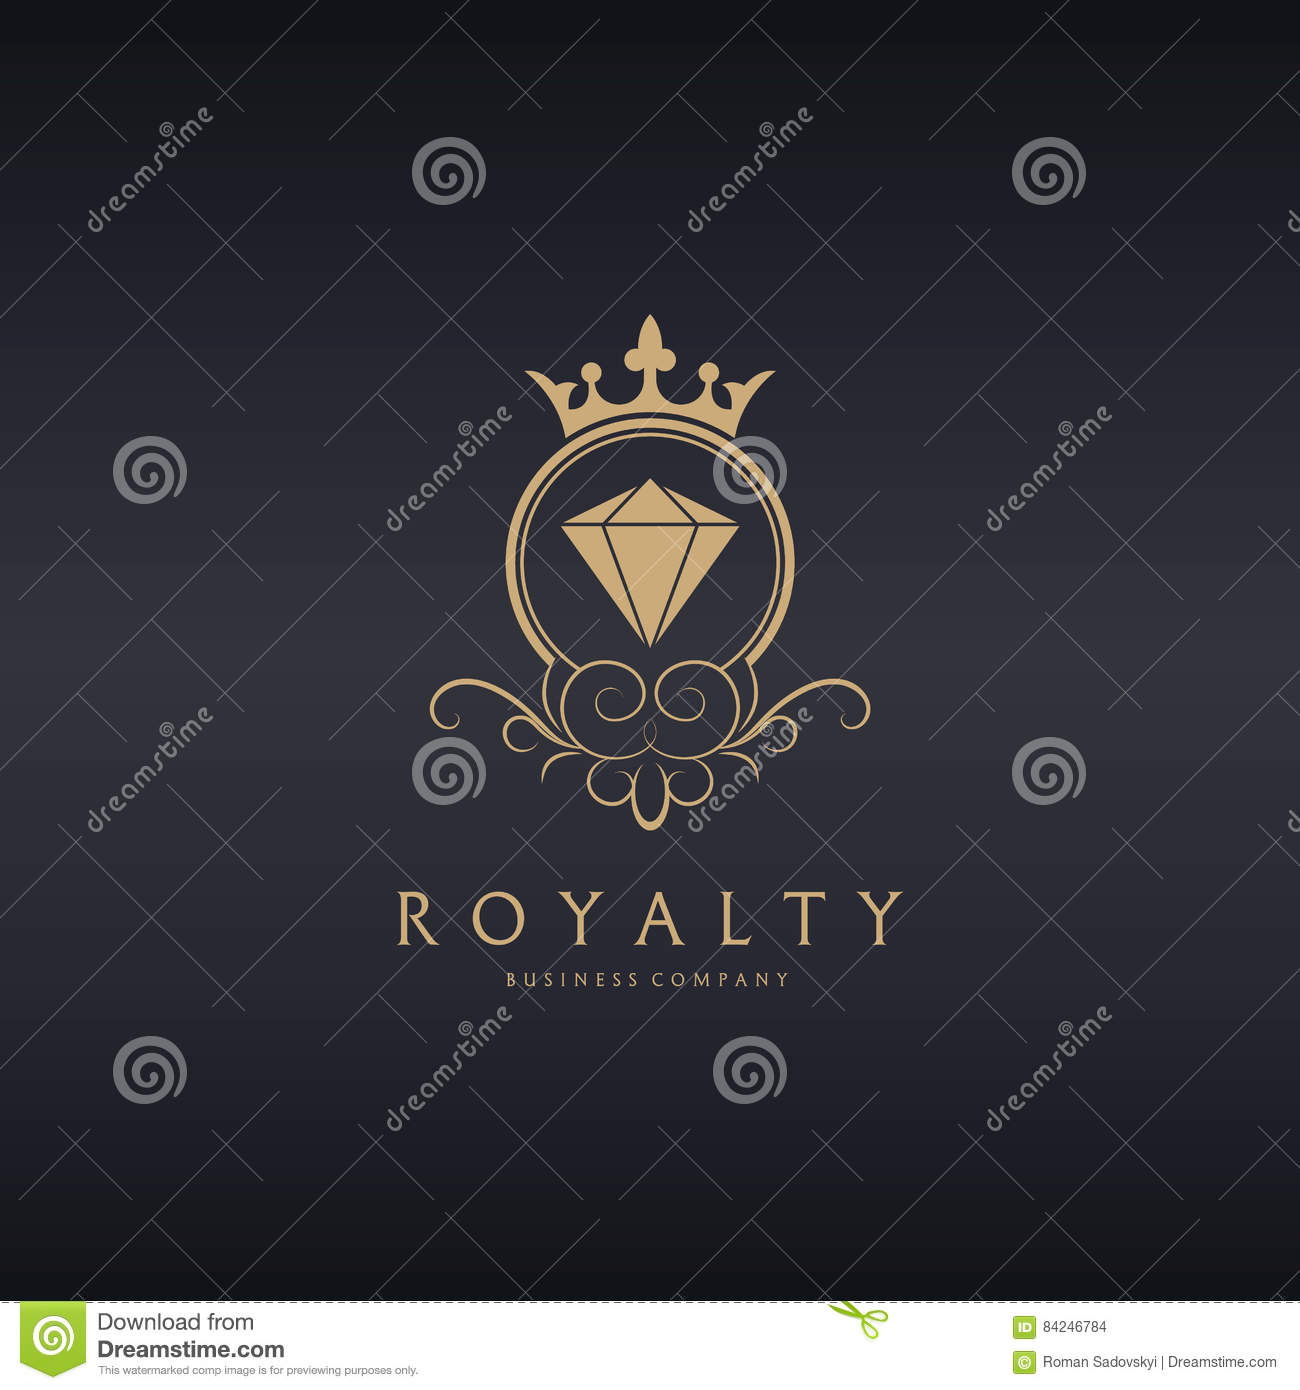 Royalty treasure stone logo stock vector illustration of company royalty treasure stone logo biocorpaavc Choice Image